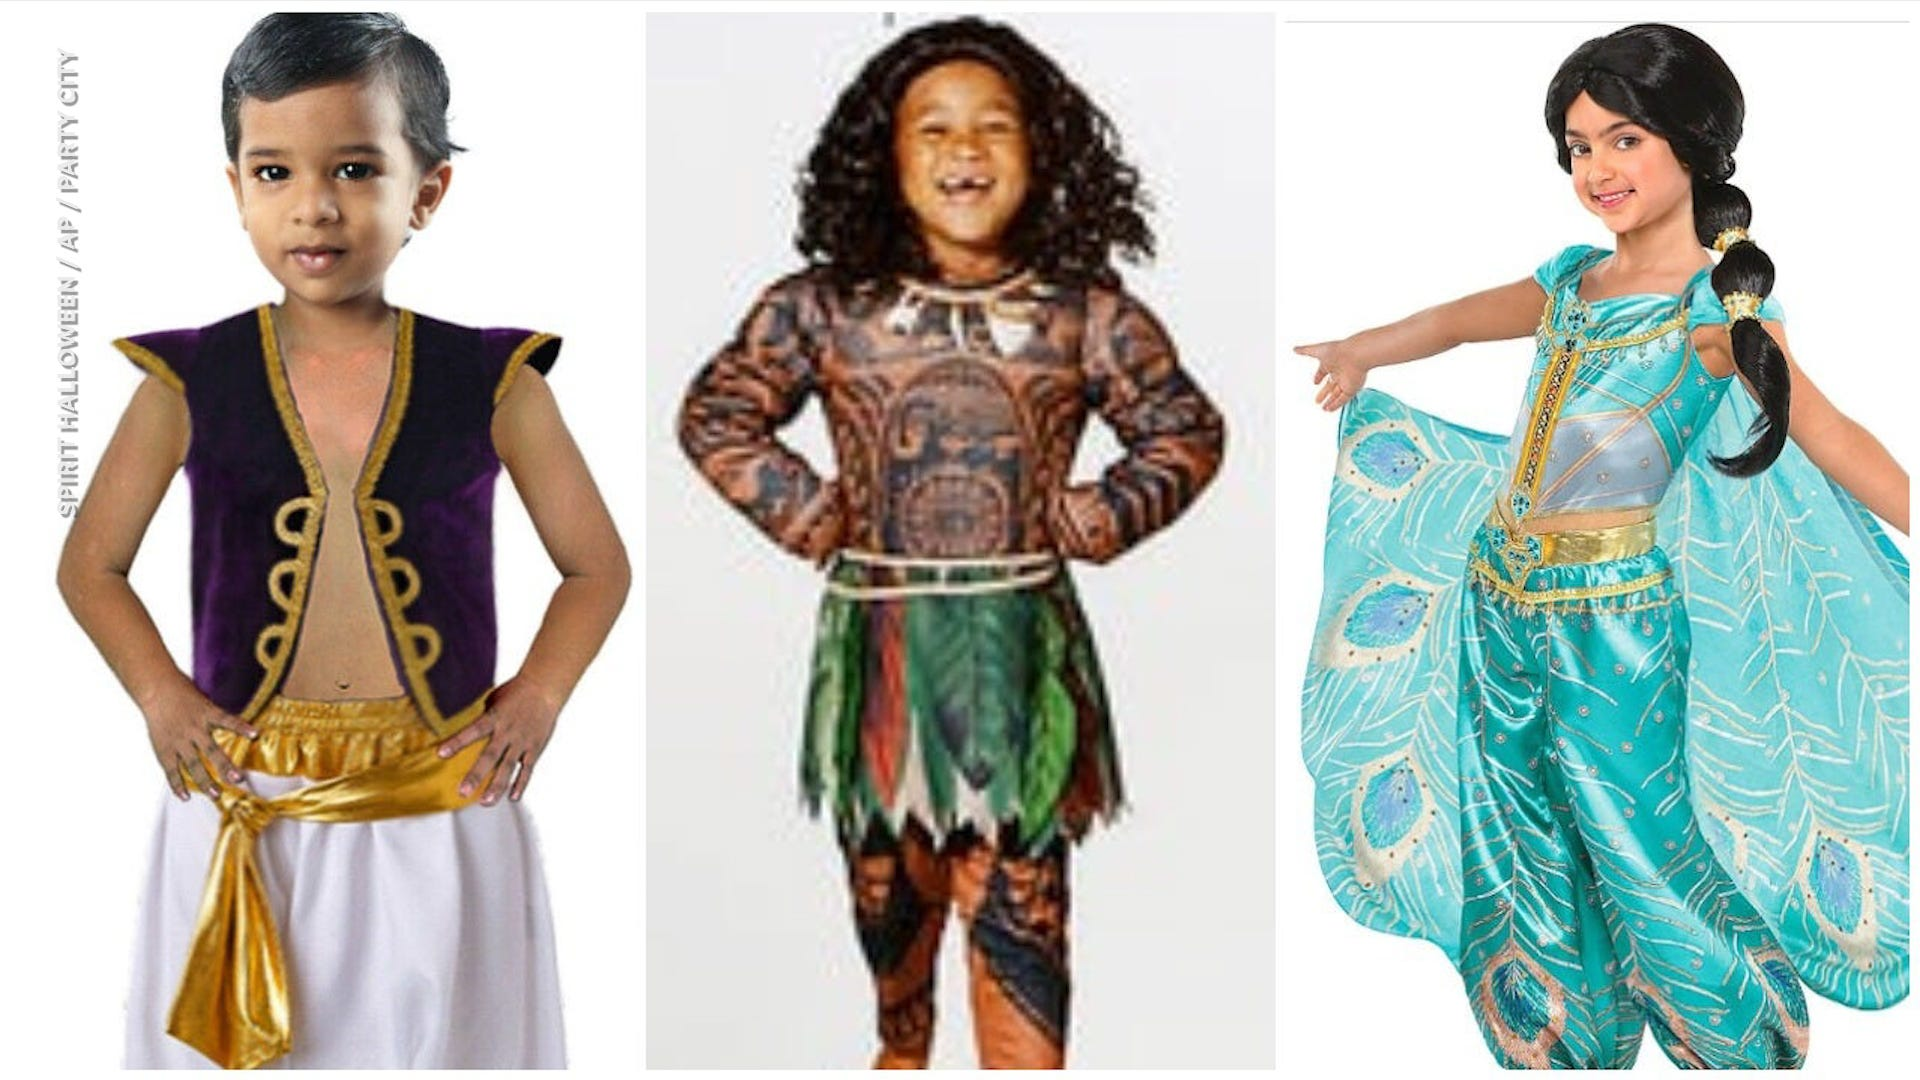 Halloween tips for parents on avoiding culturally offensive kid costumes